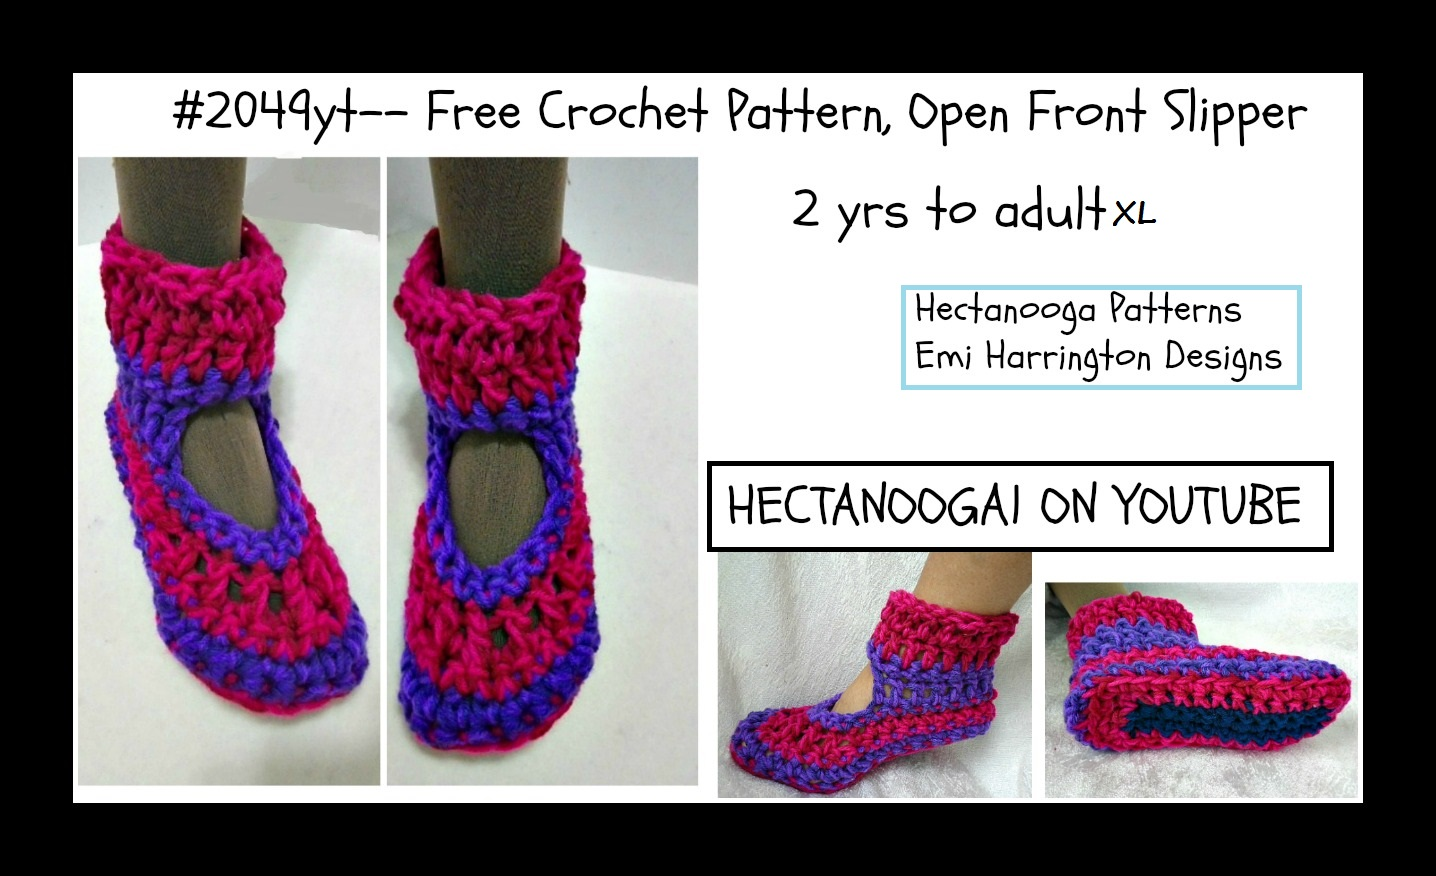 HECTANOOGA PATTERNS: FREE CROCHET PATTERN, Open Front Slipper, 2 yrs ...